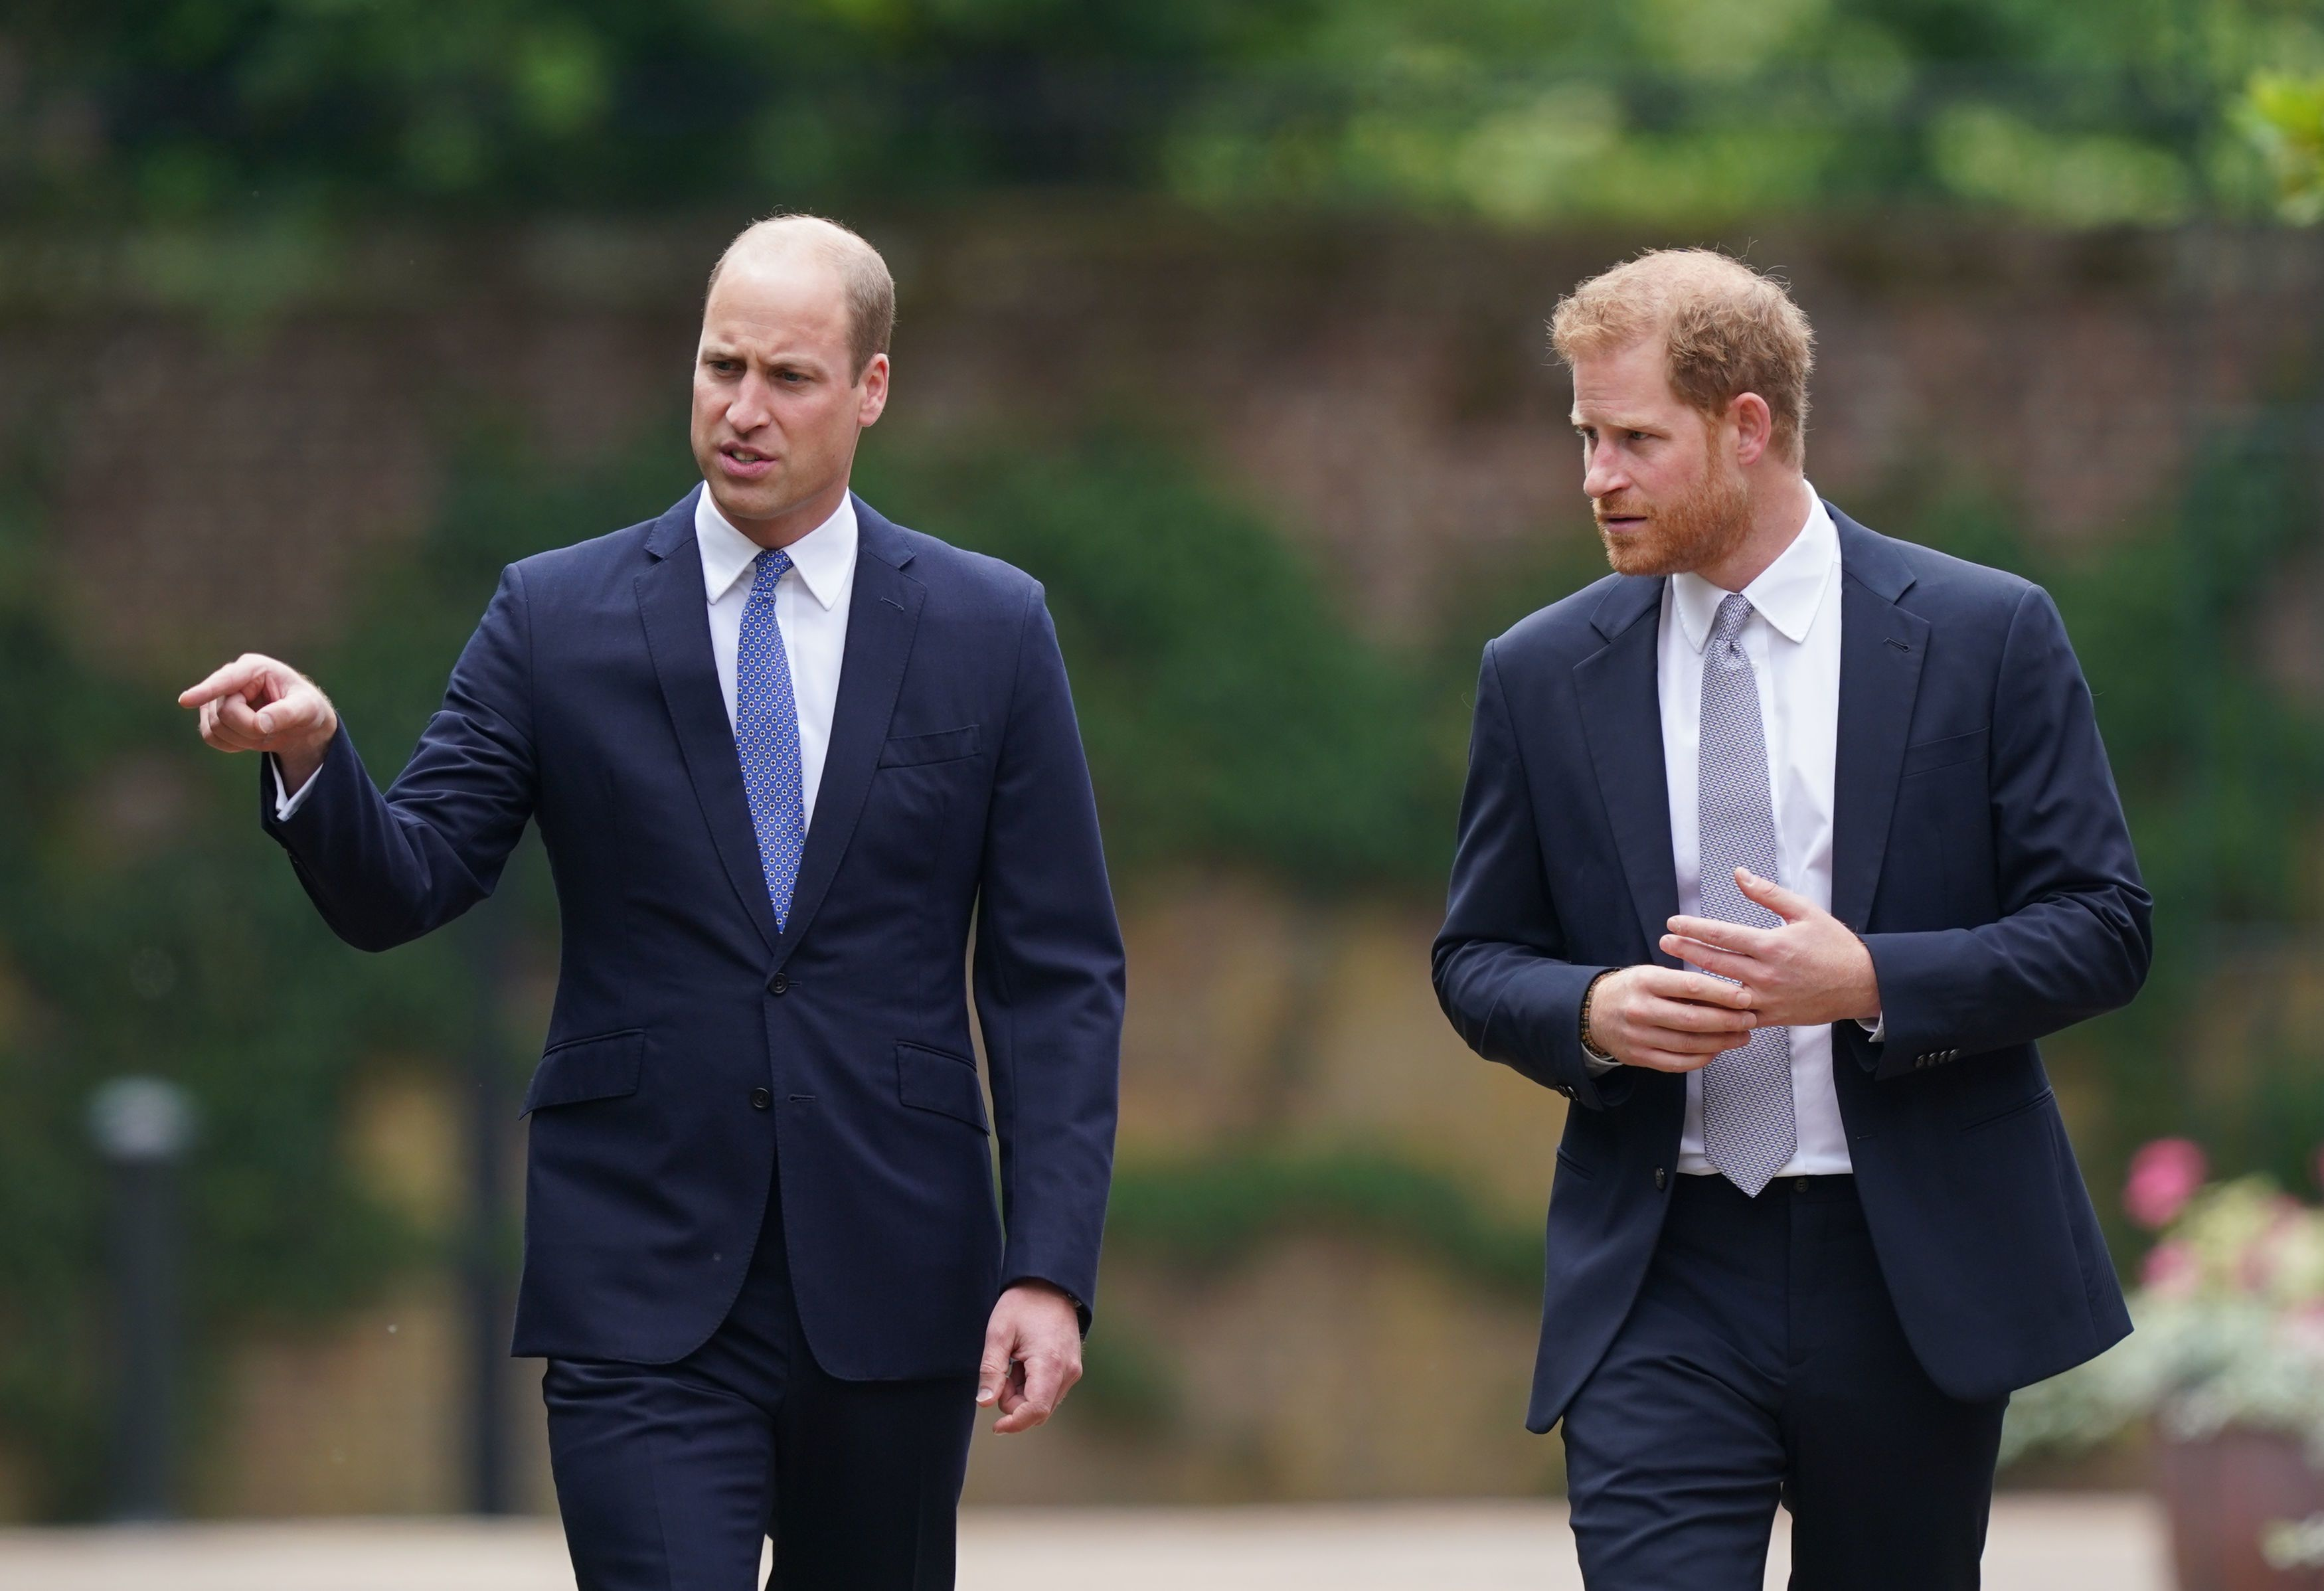 Prince William's Remarks at an Event Suggest He Still Talks to Prince Harry